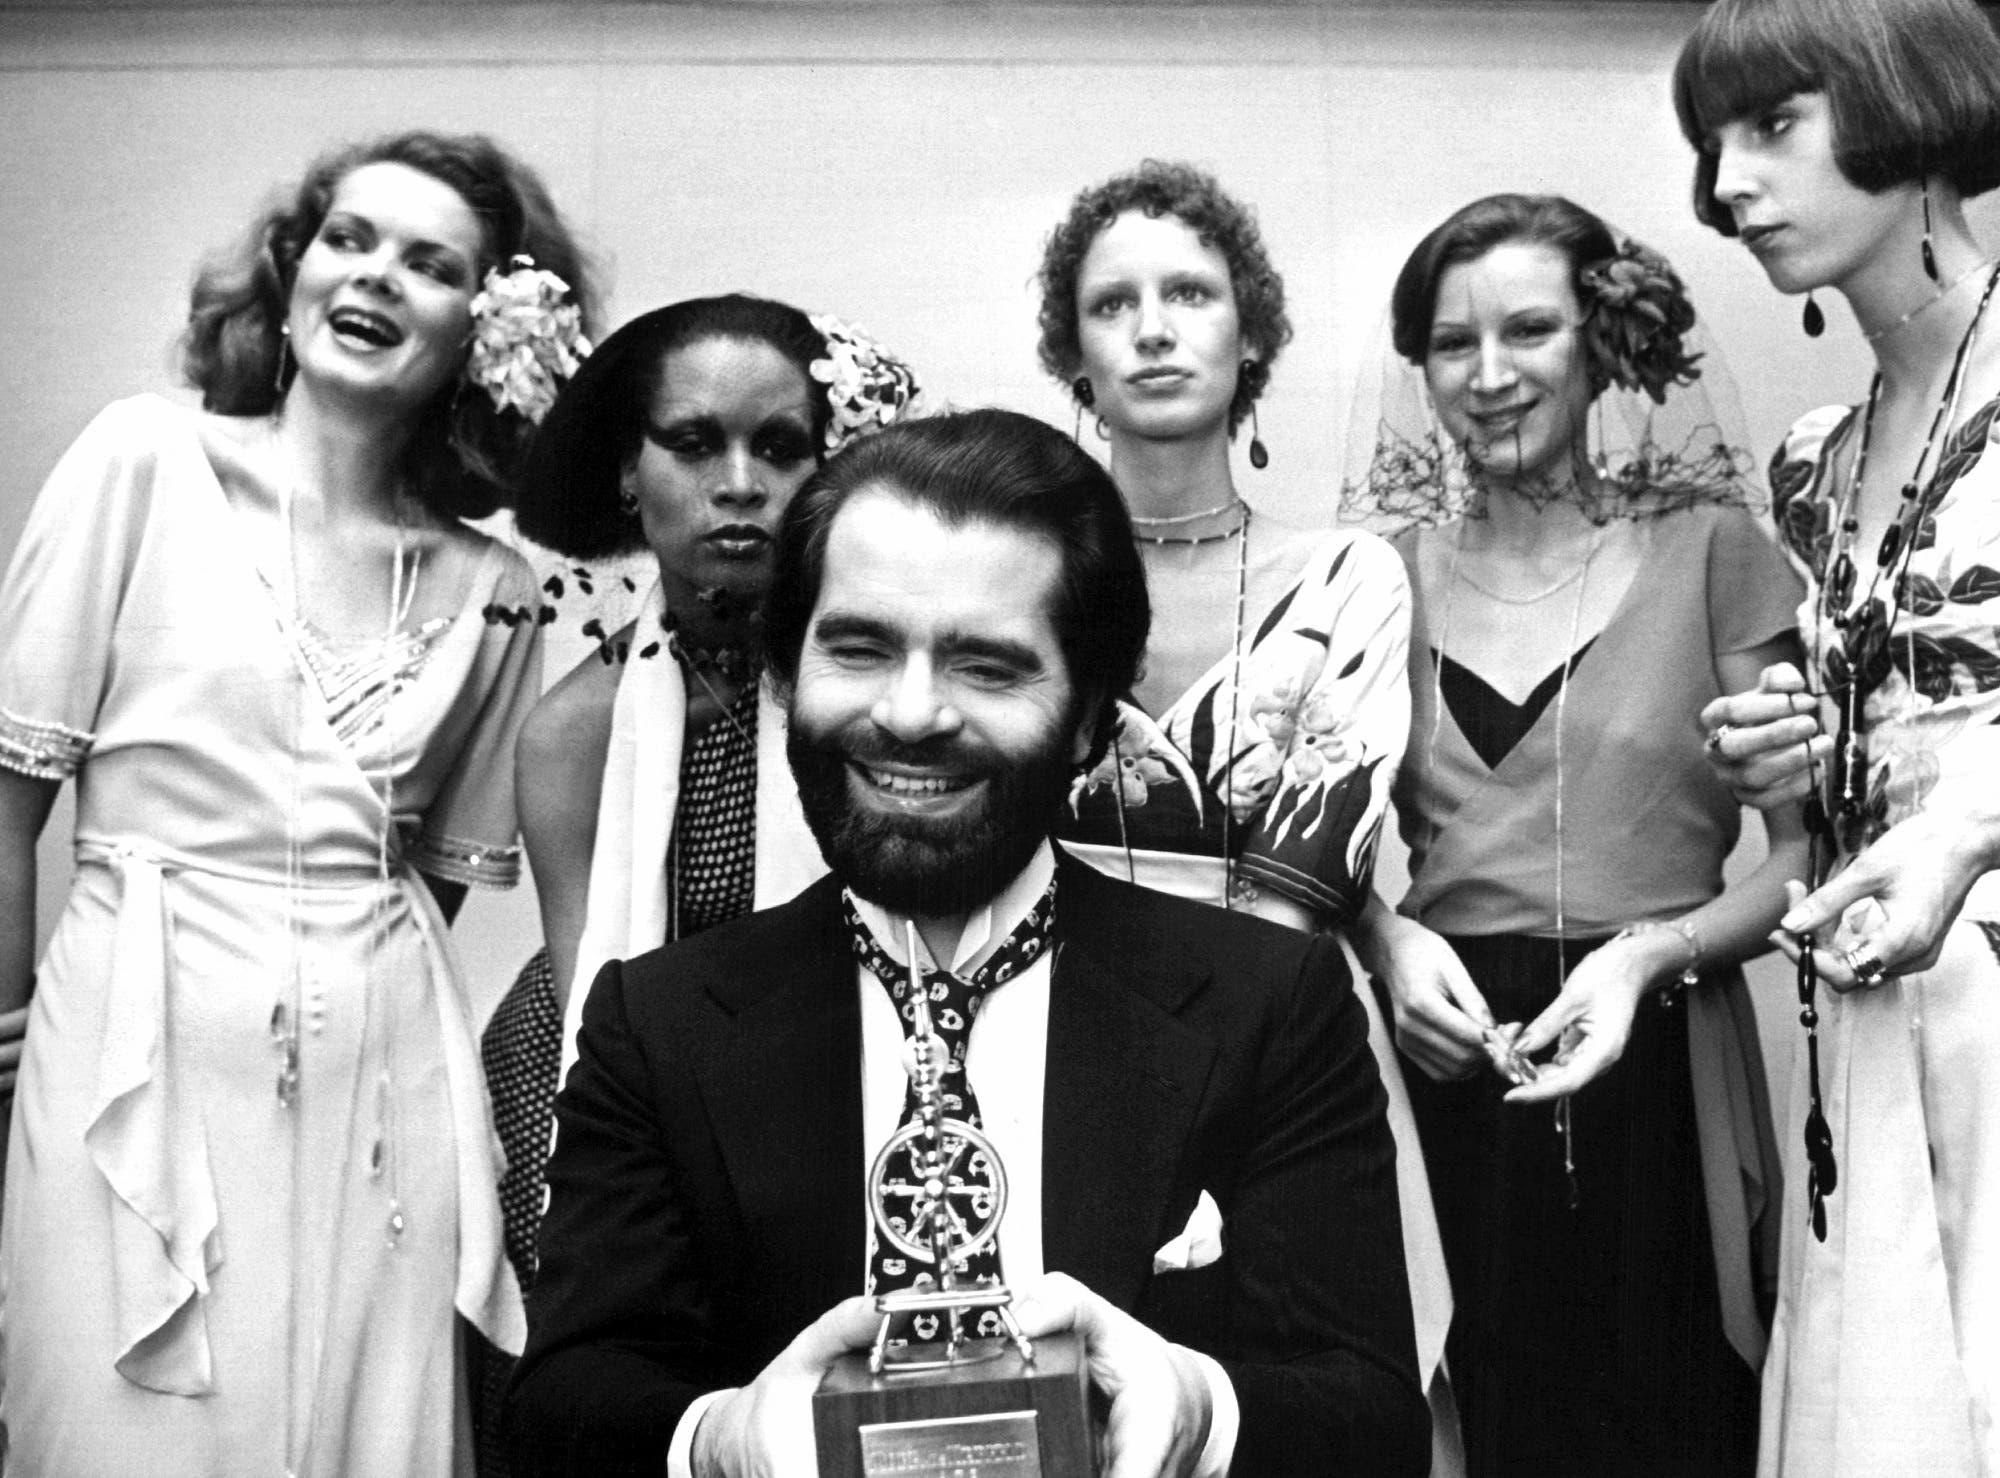 German fashion designer Karl Lagerfeld posing with models after receiving an award in Krefeld, western Germany, on November 29, 1973. (AFP)